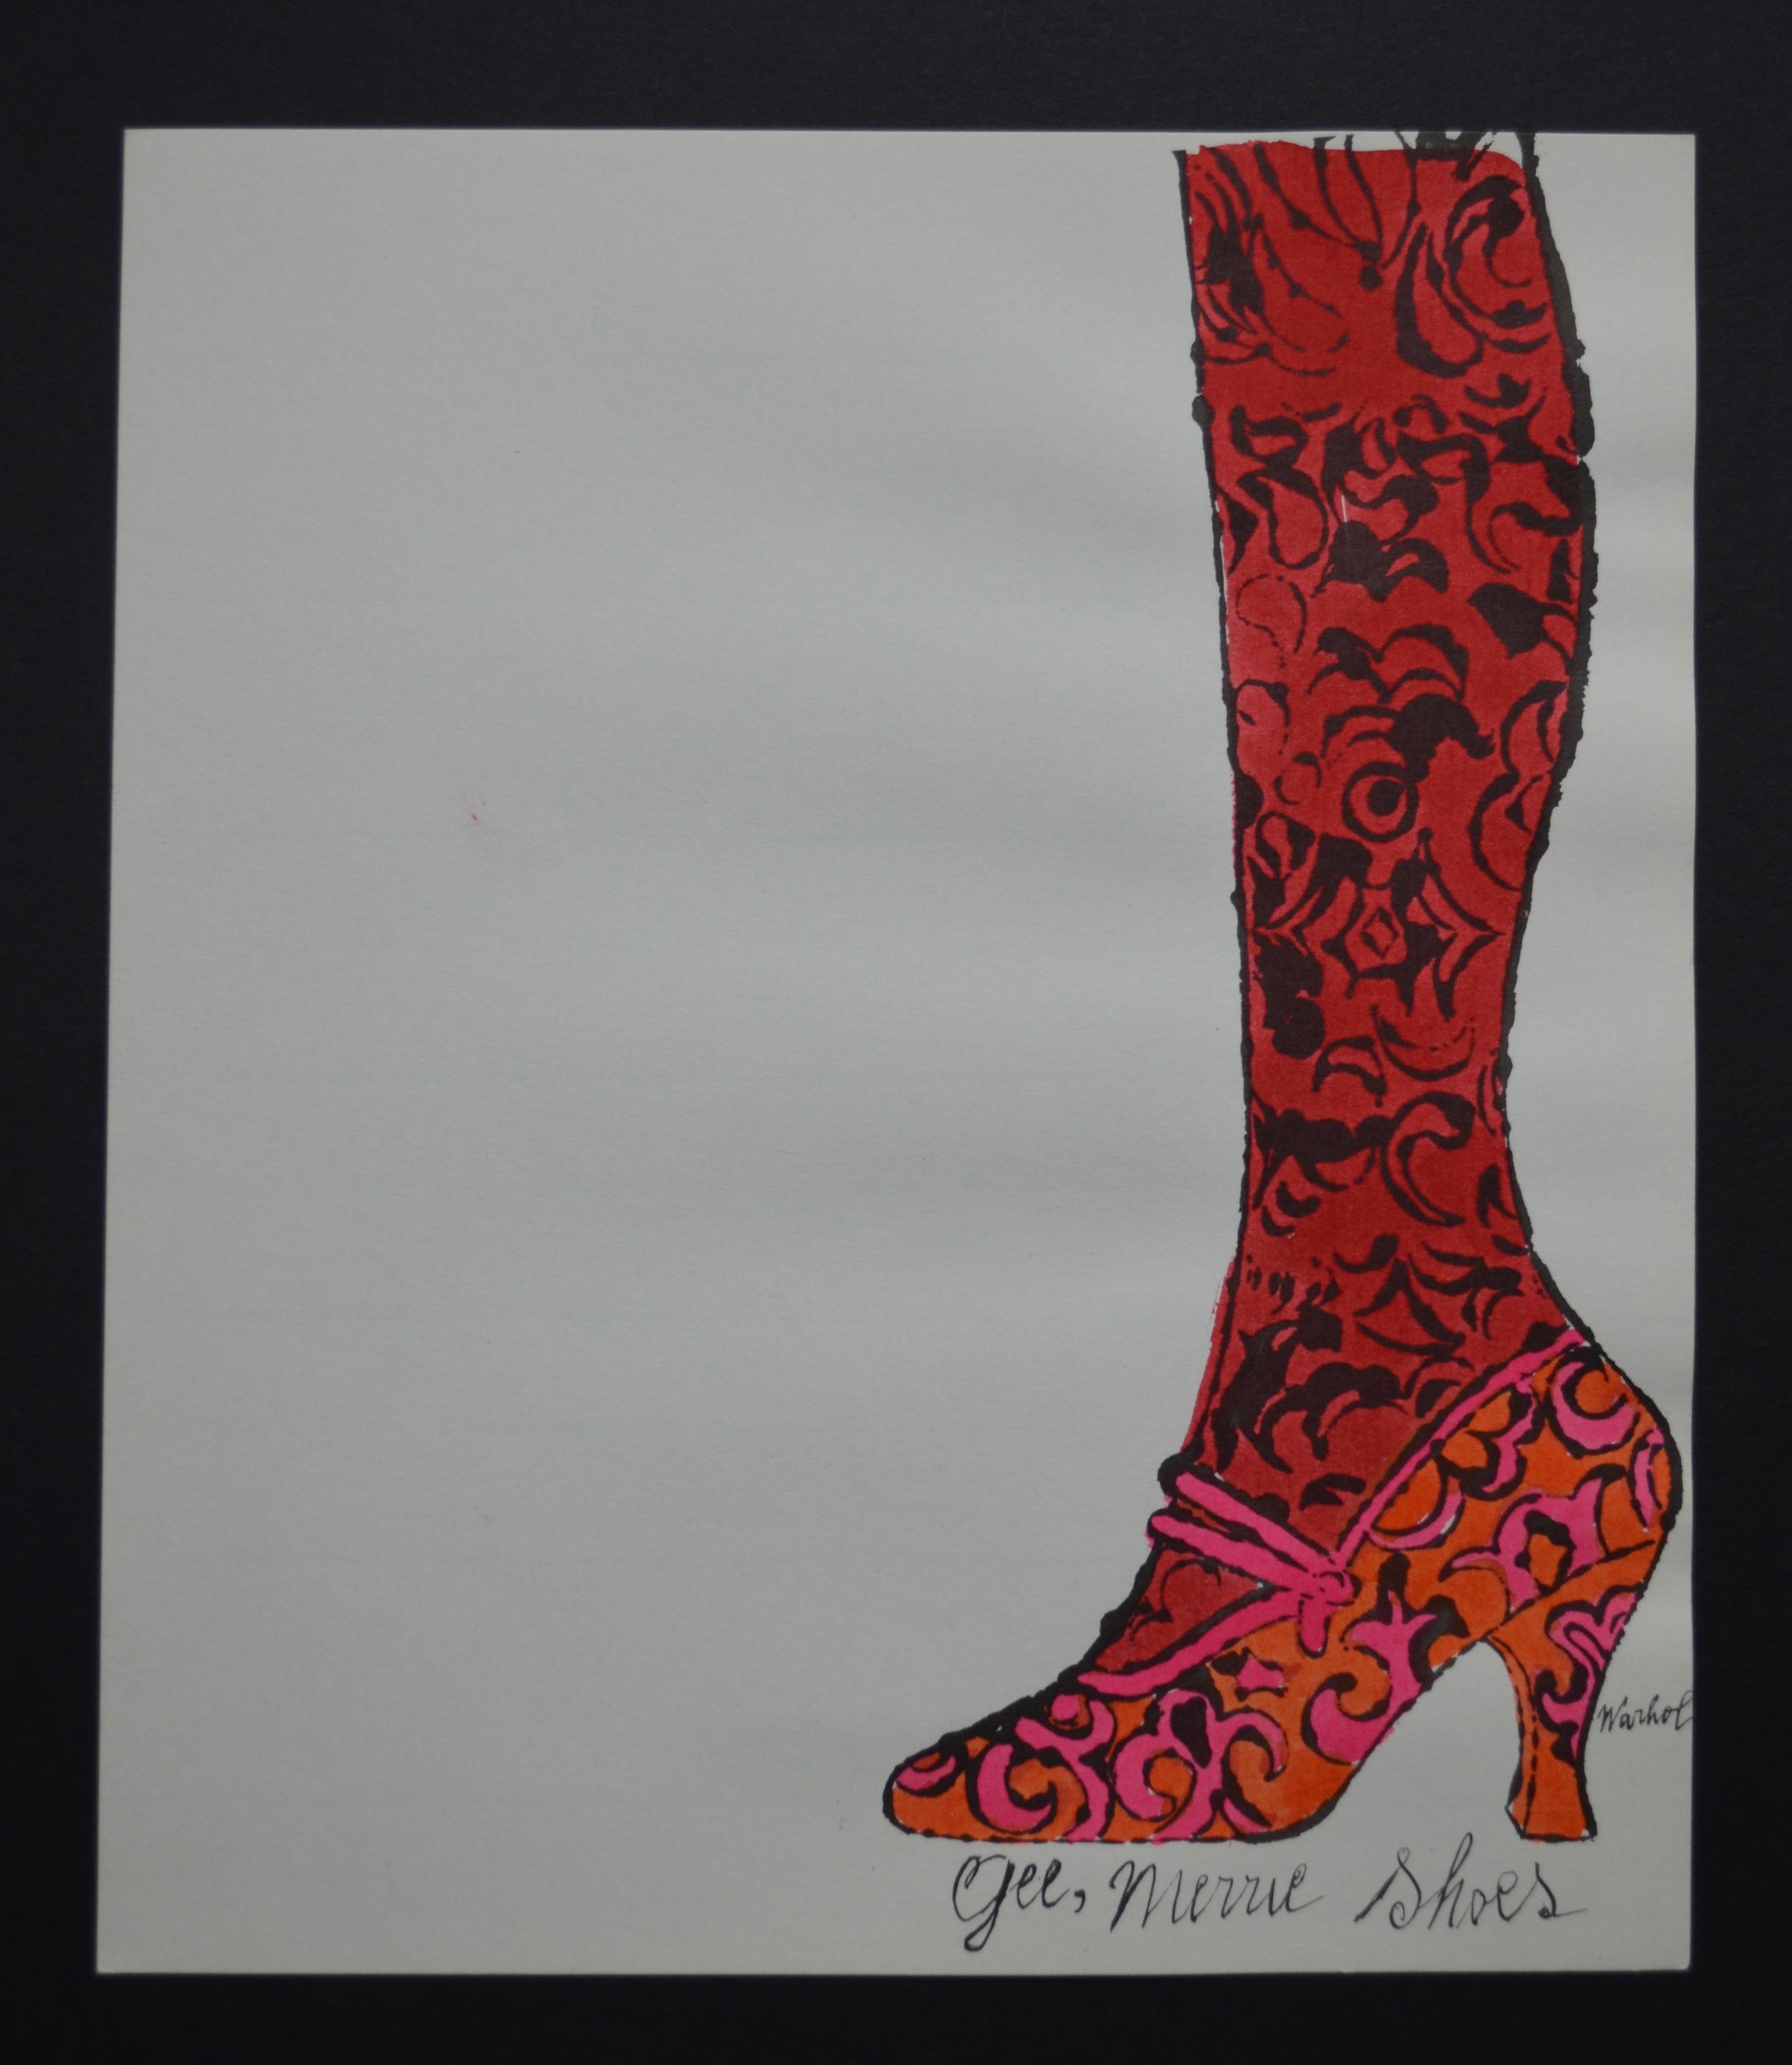 Andy Warhol - Gee Merrie Shoe - Additional Information